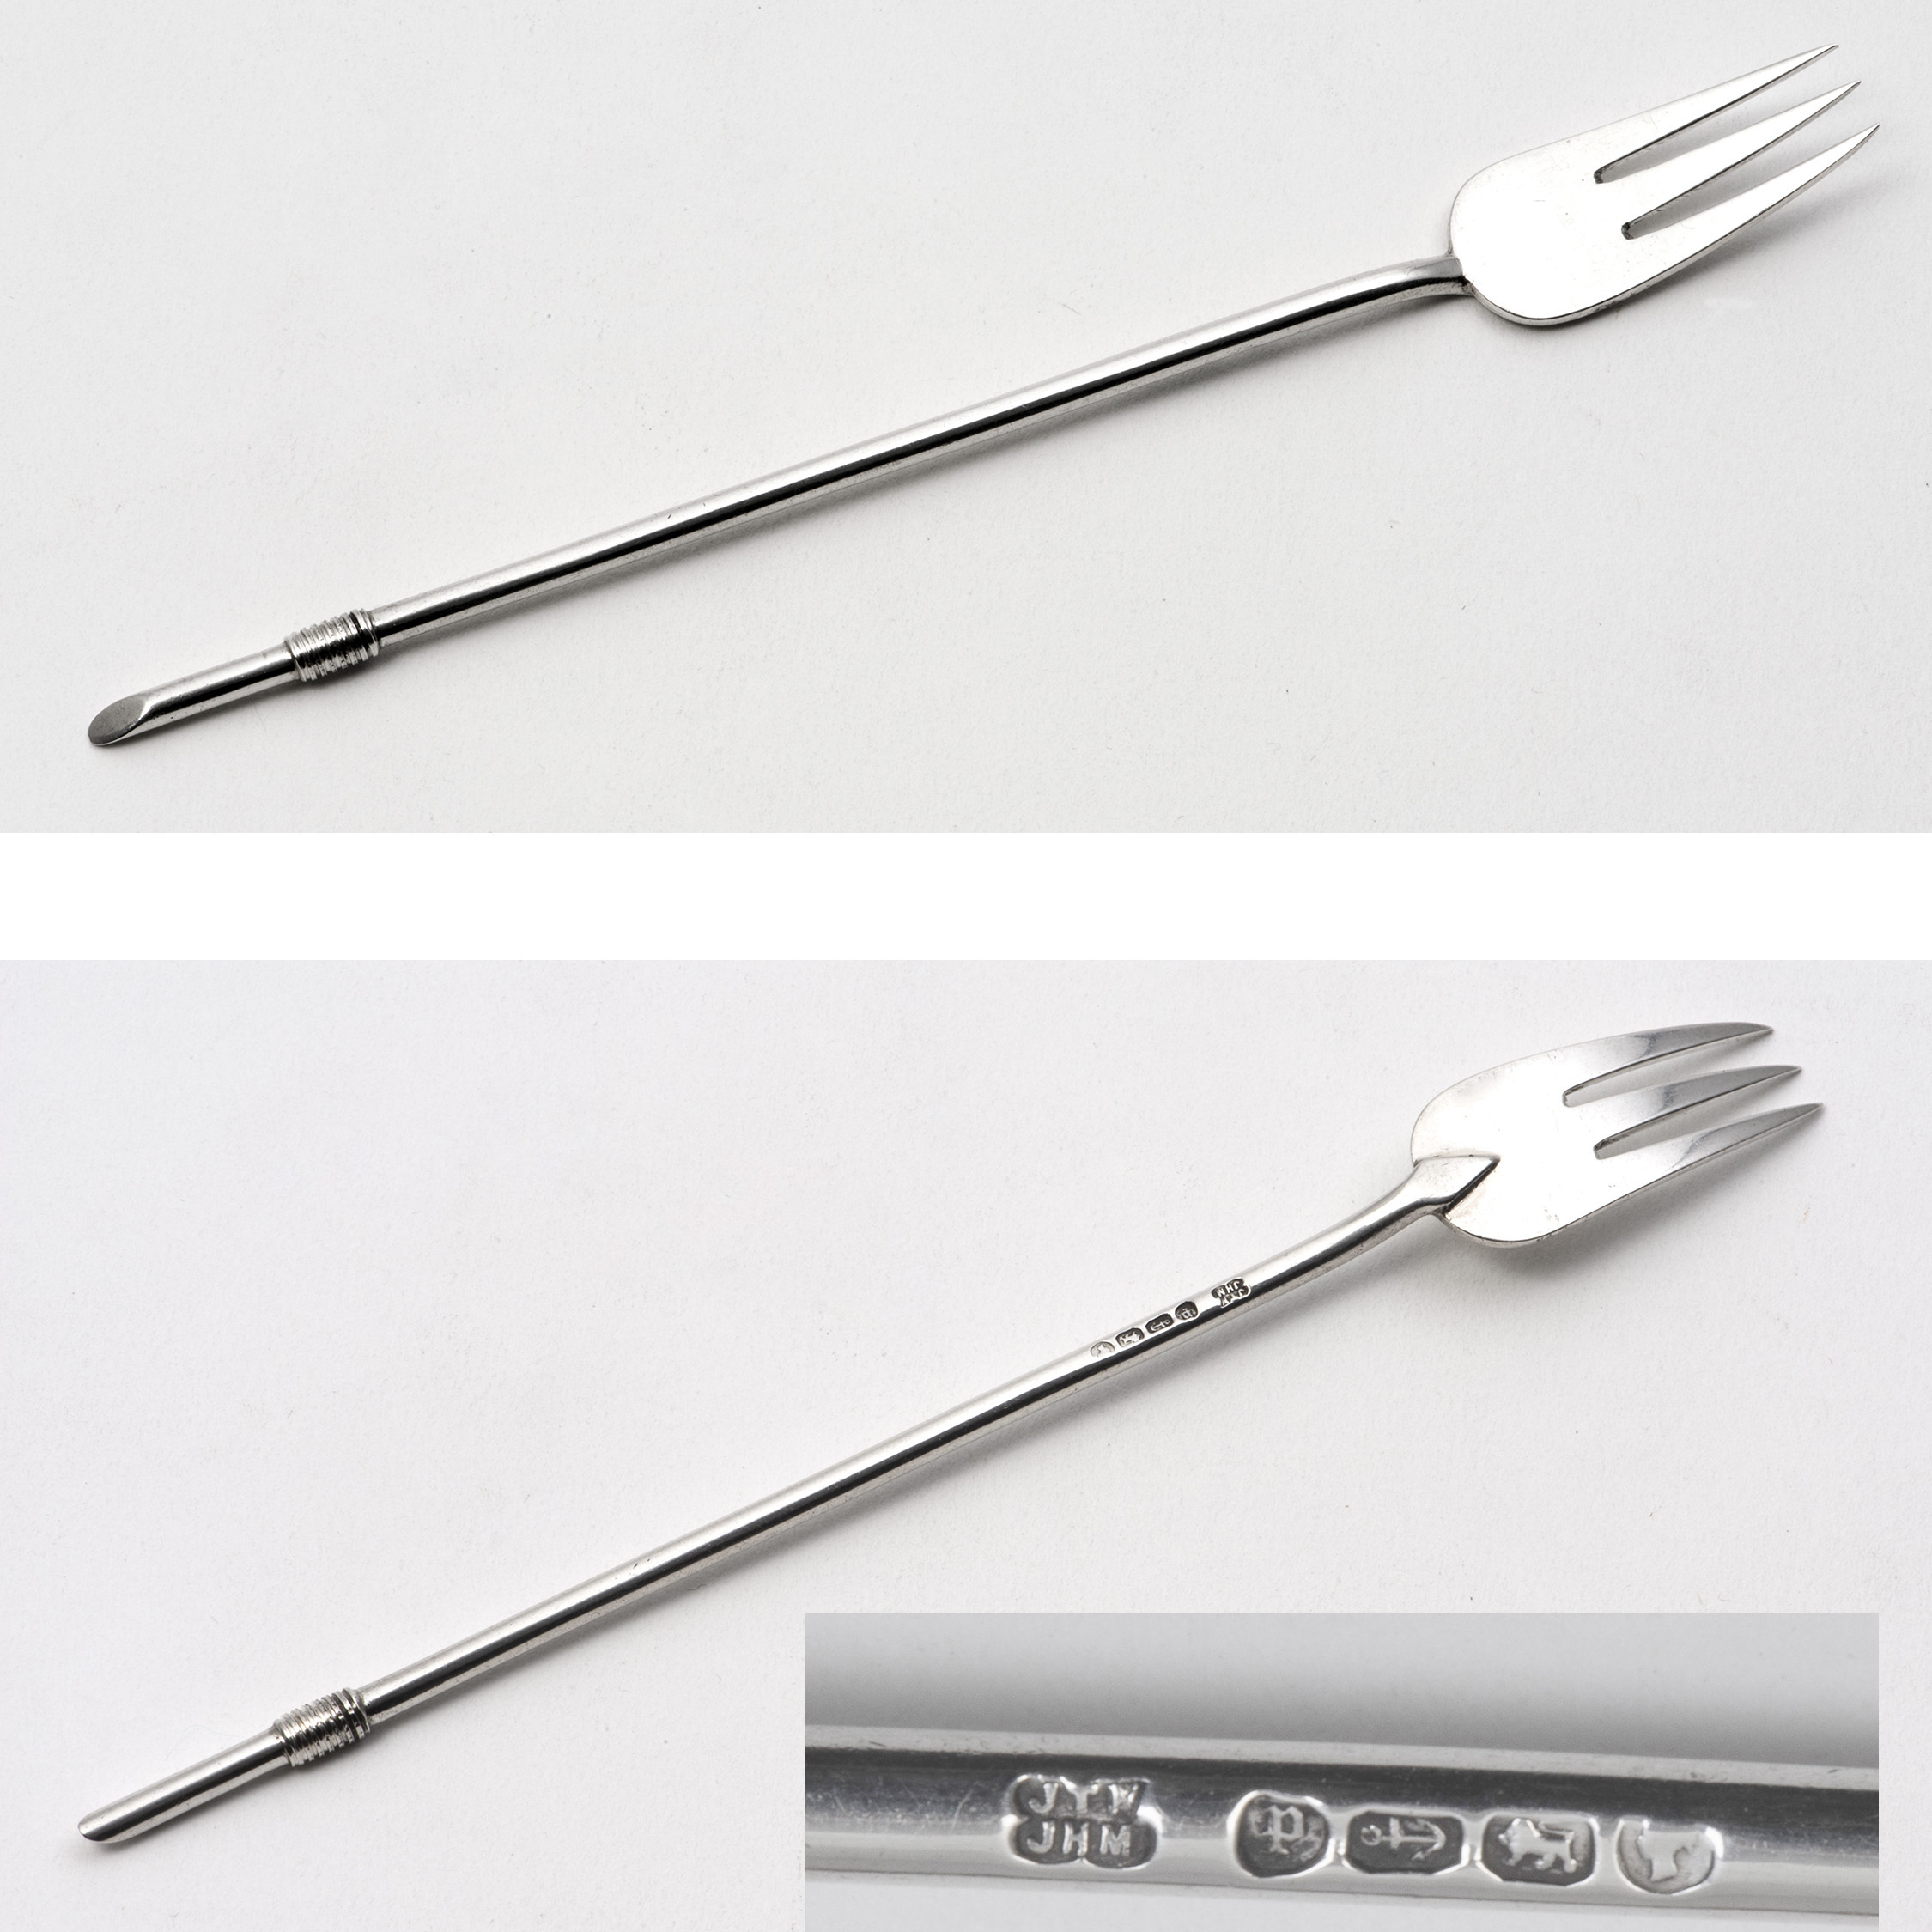 A Small Serving Fork By Hukin And Heath.